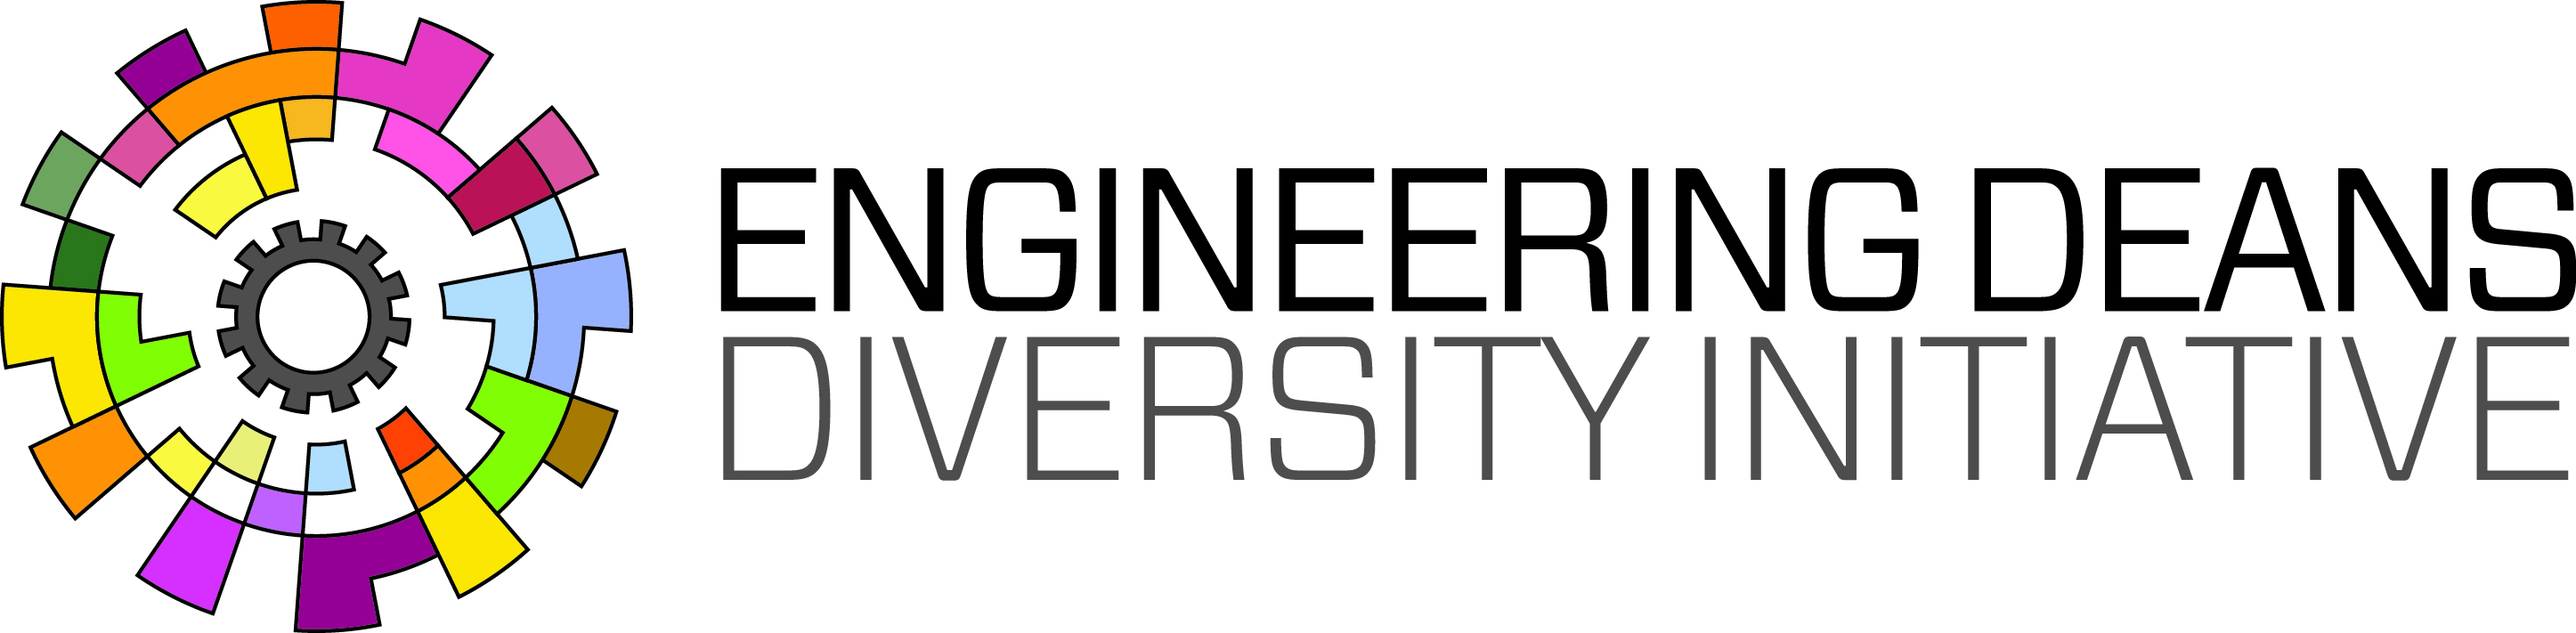 Engineering Dean's Diversity